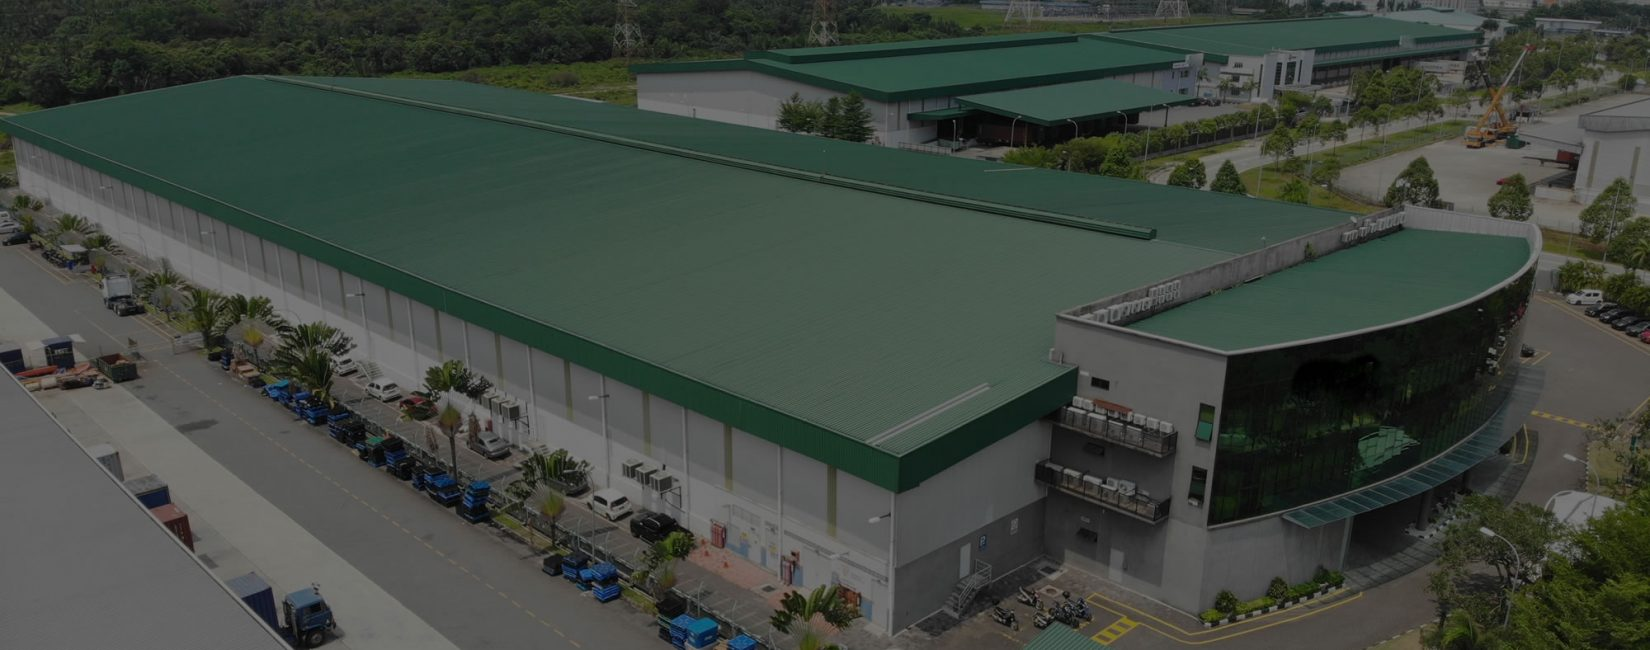 Factory/Warehouse For Sale/Rent in Malaysia - Industrialspace2U